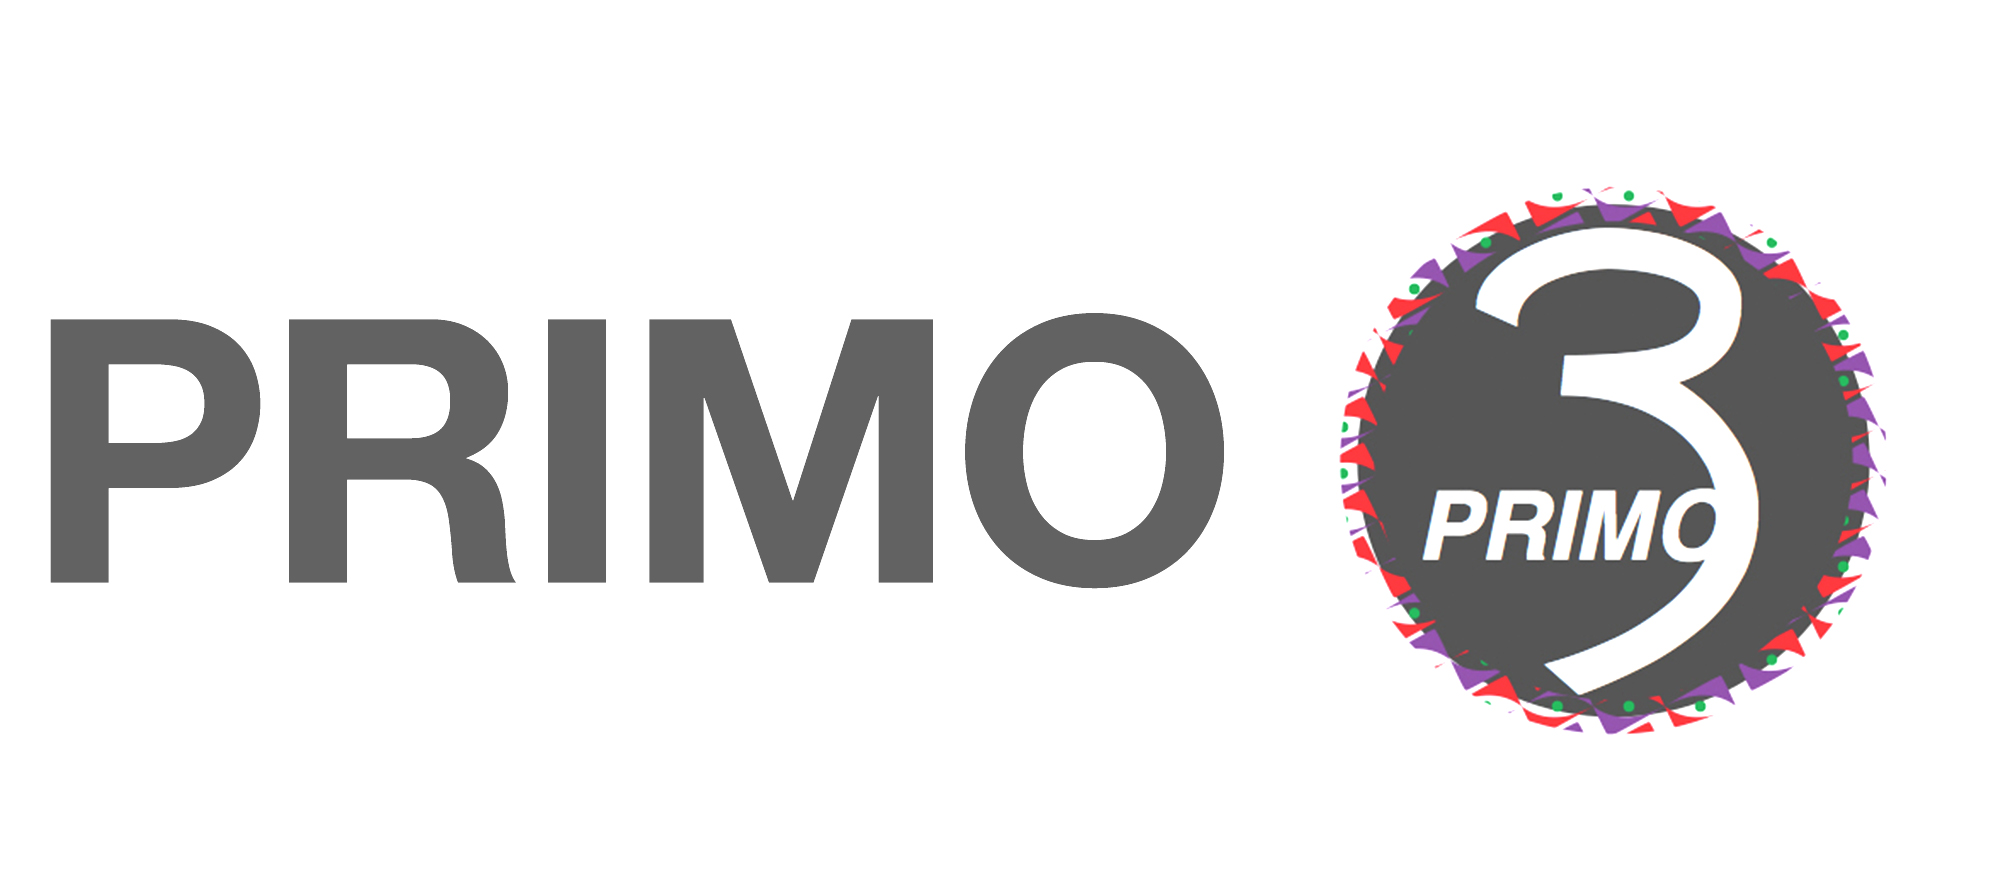 Custom 9 inch Primo Wheel - Primo 3 Spoke composite Hub with 9 Inch Tyre